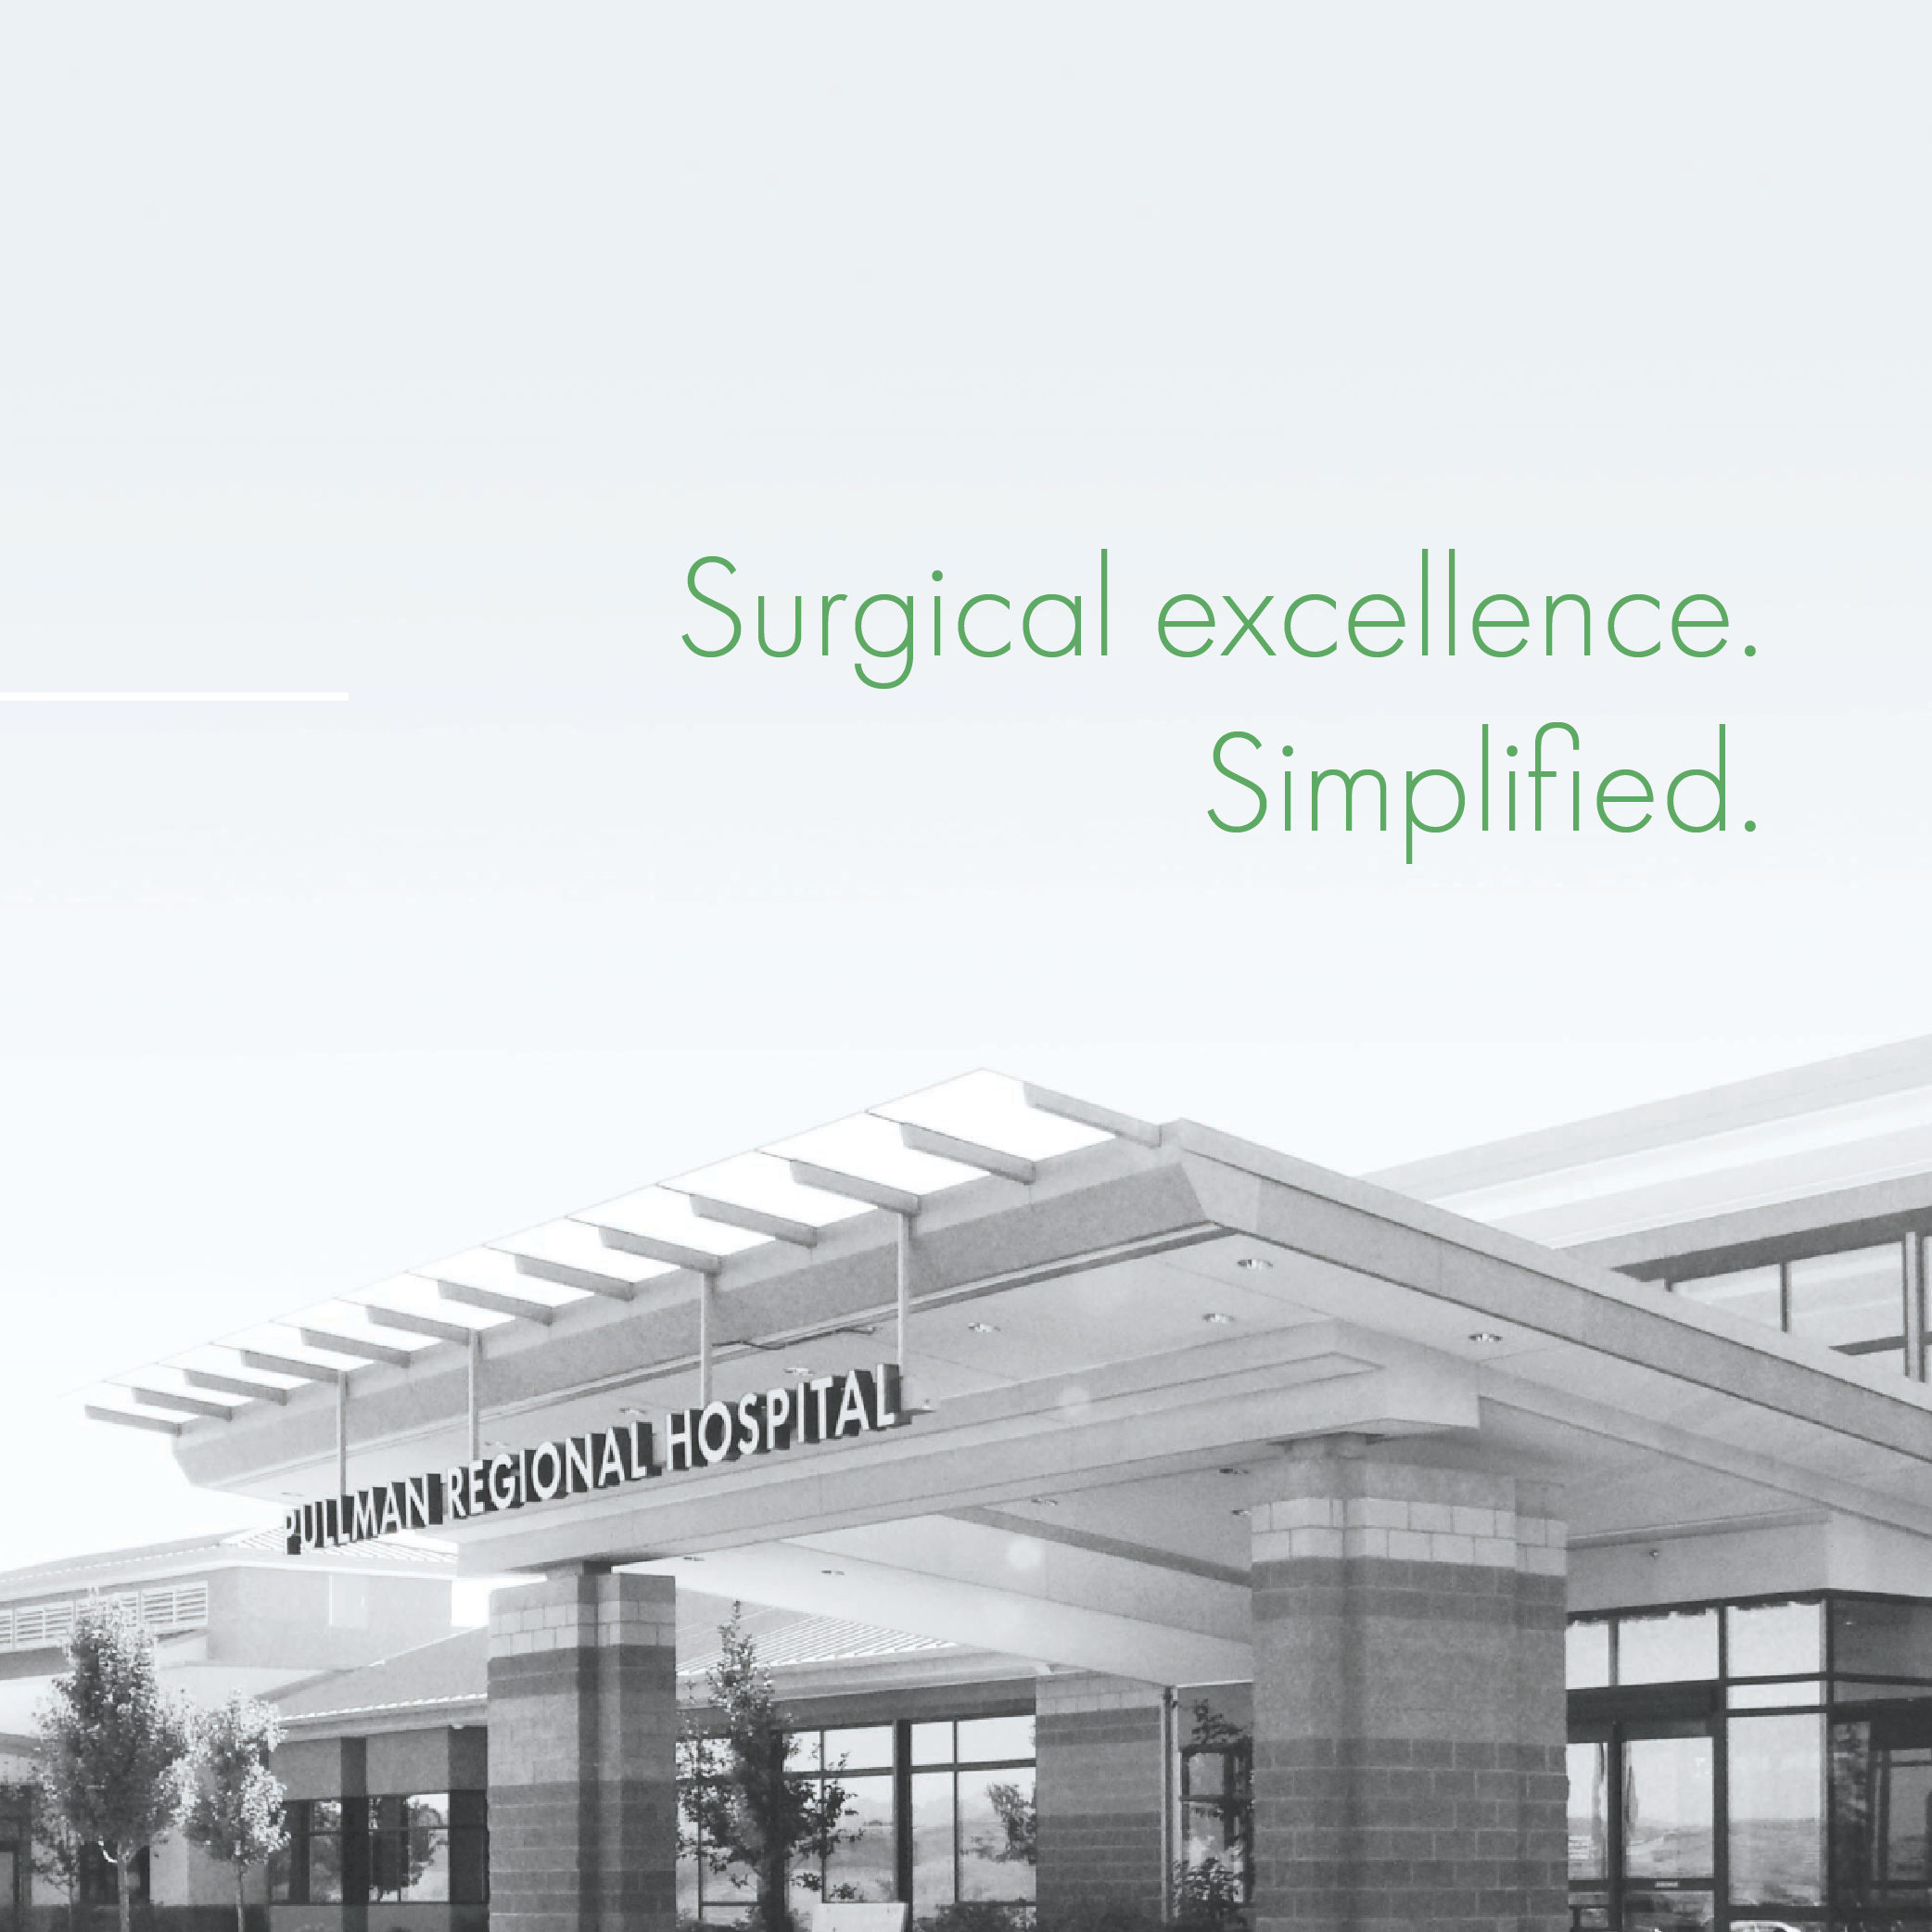 Surgical Excellence Unveil with Date-03